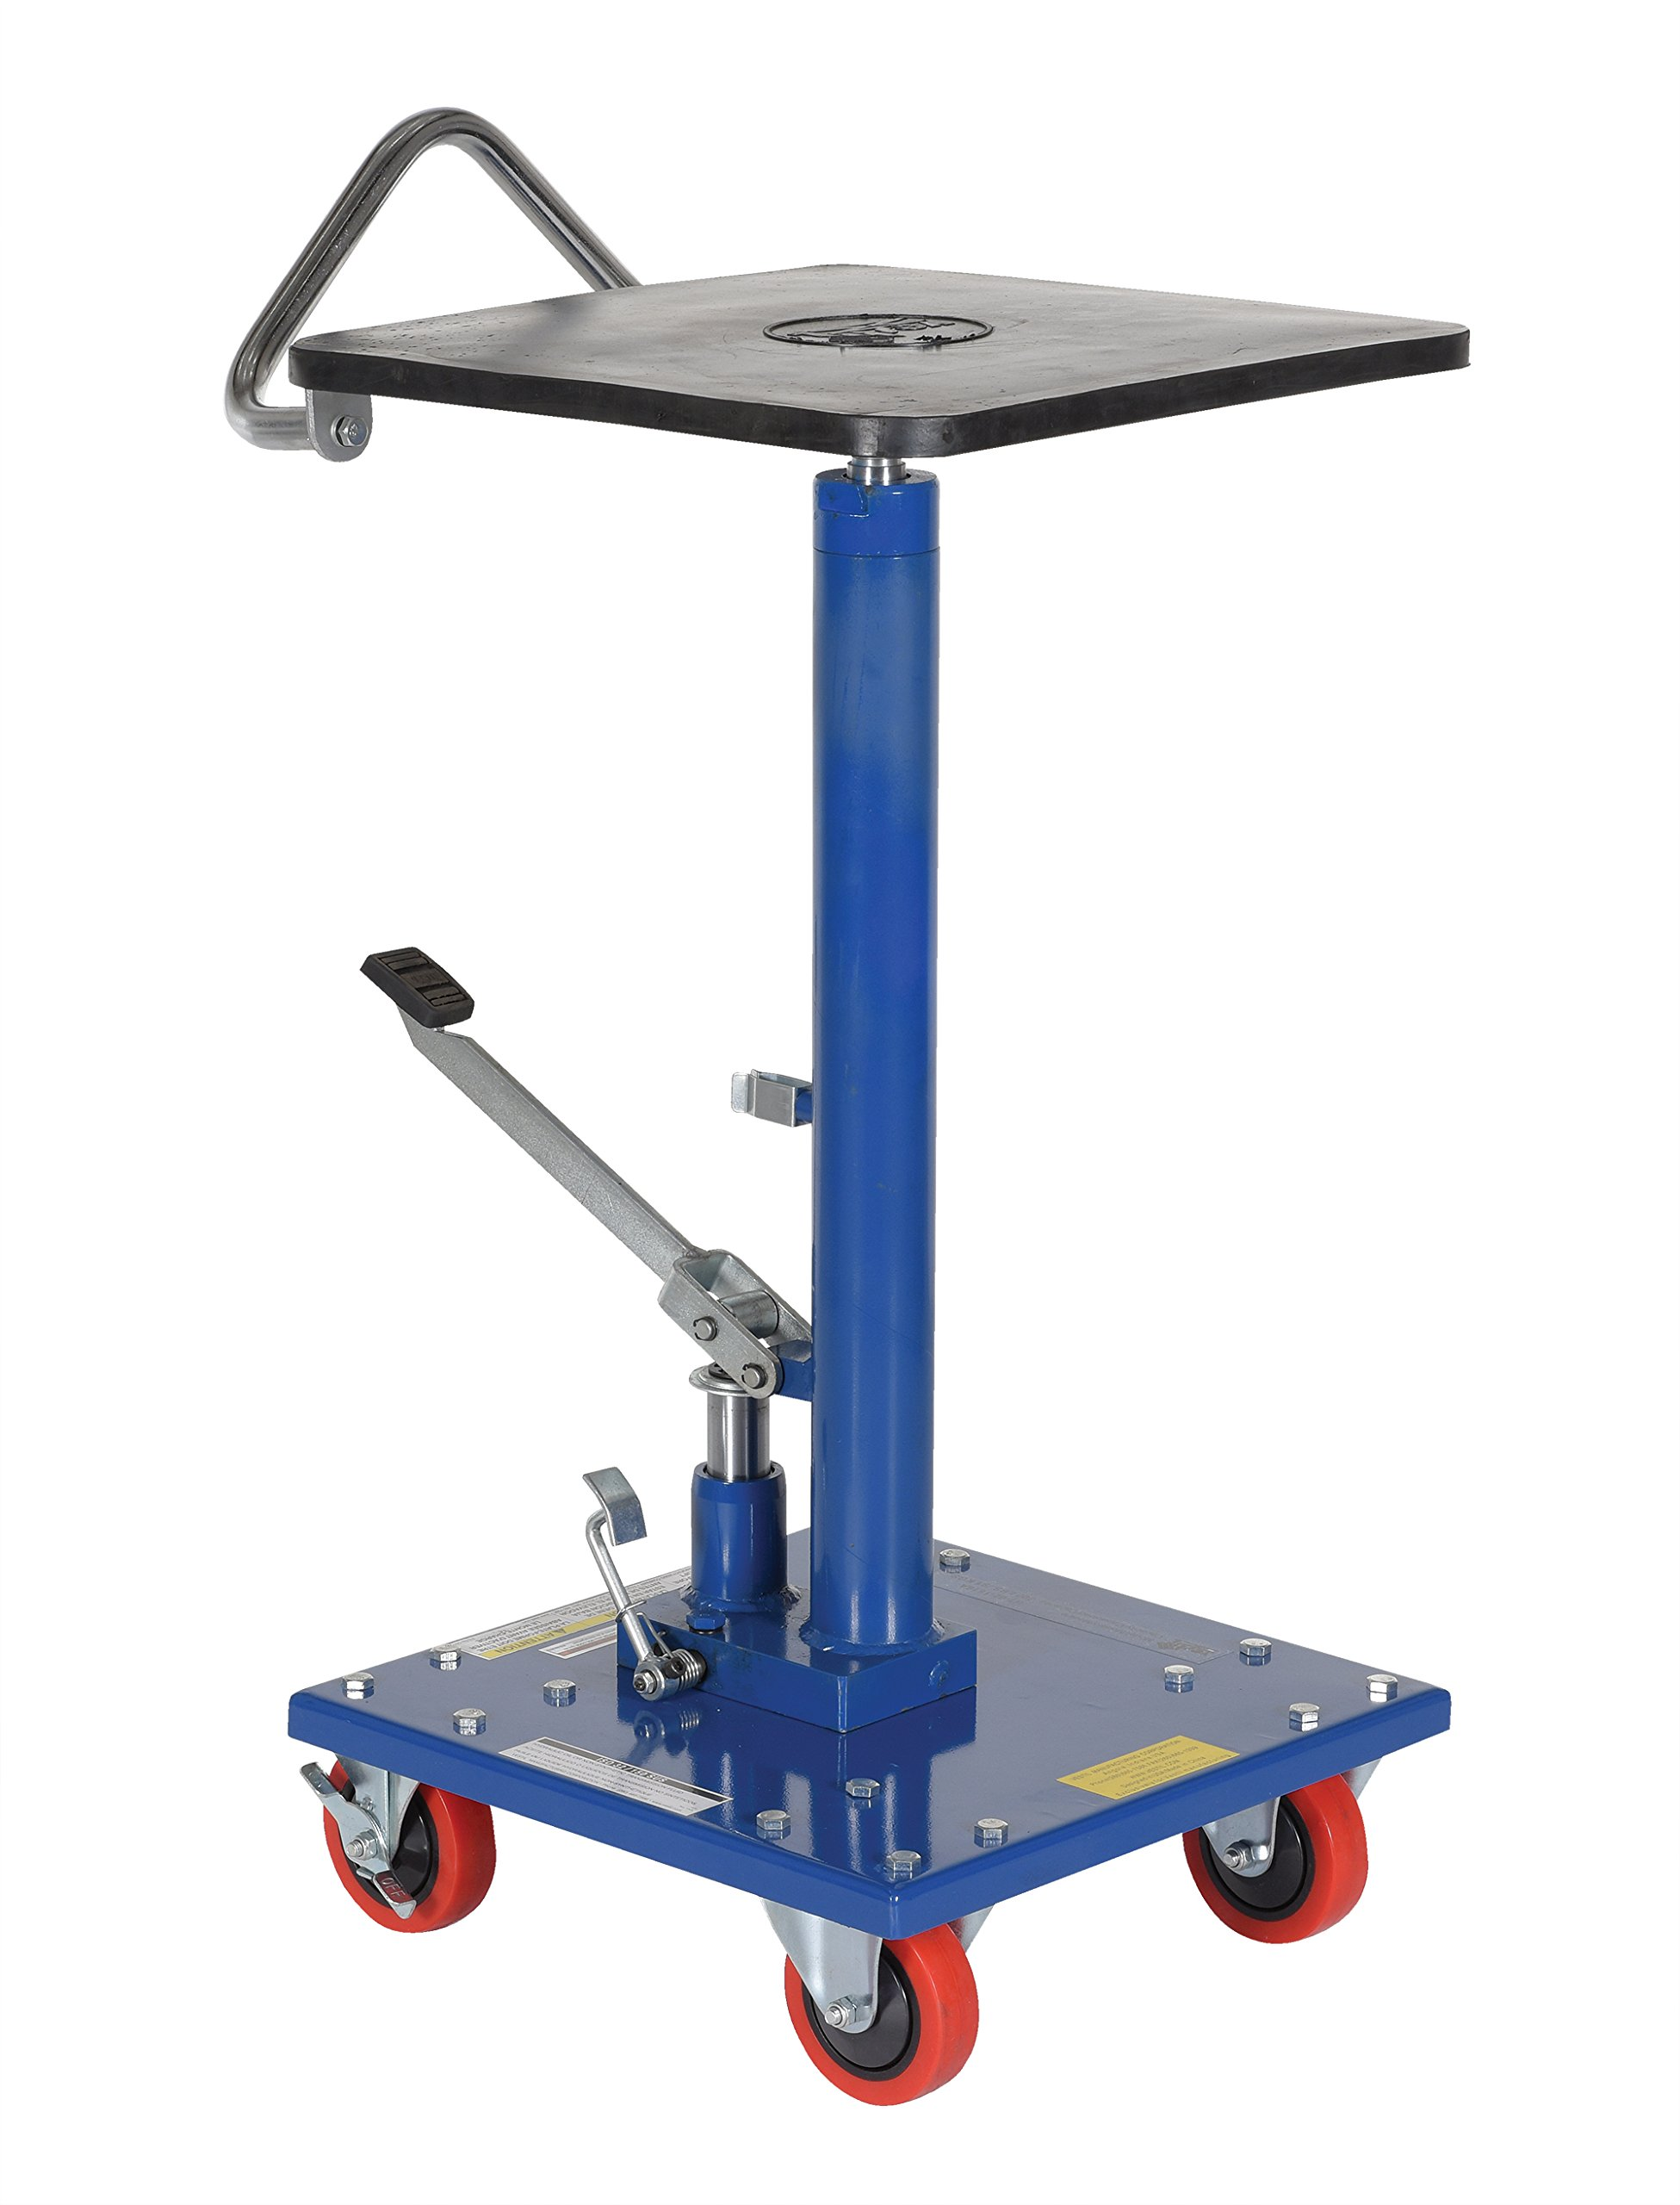 Vestil HT-02-1616A Steel Hydraulic Post Table with Powder Coat Finish, 200 lb. Capacity, 16'' x 16'' Platform, 31'' to 49'' Height Range